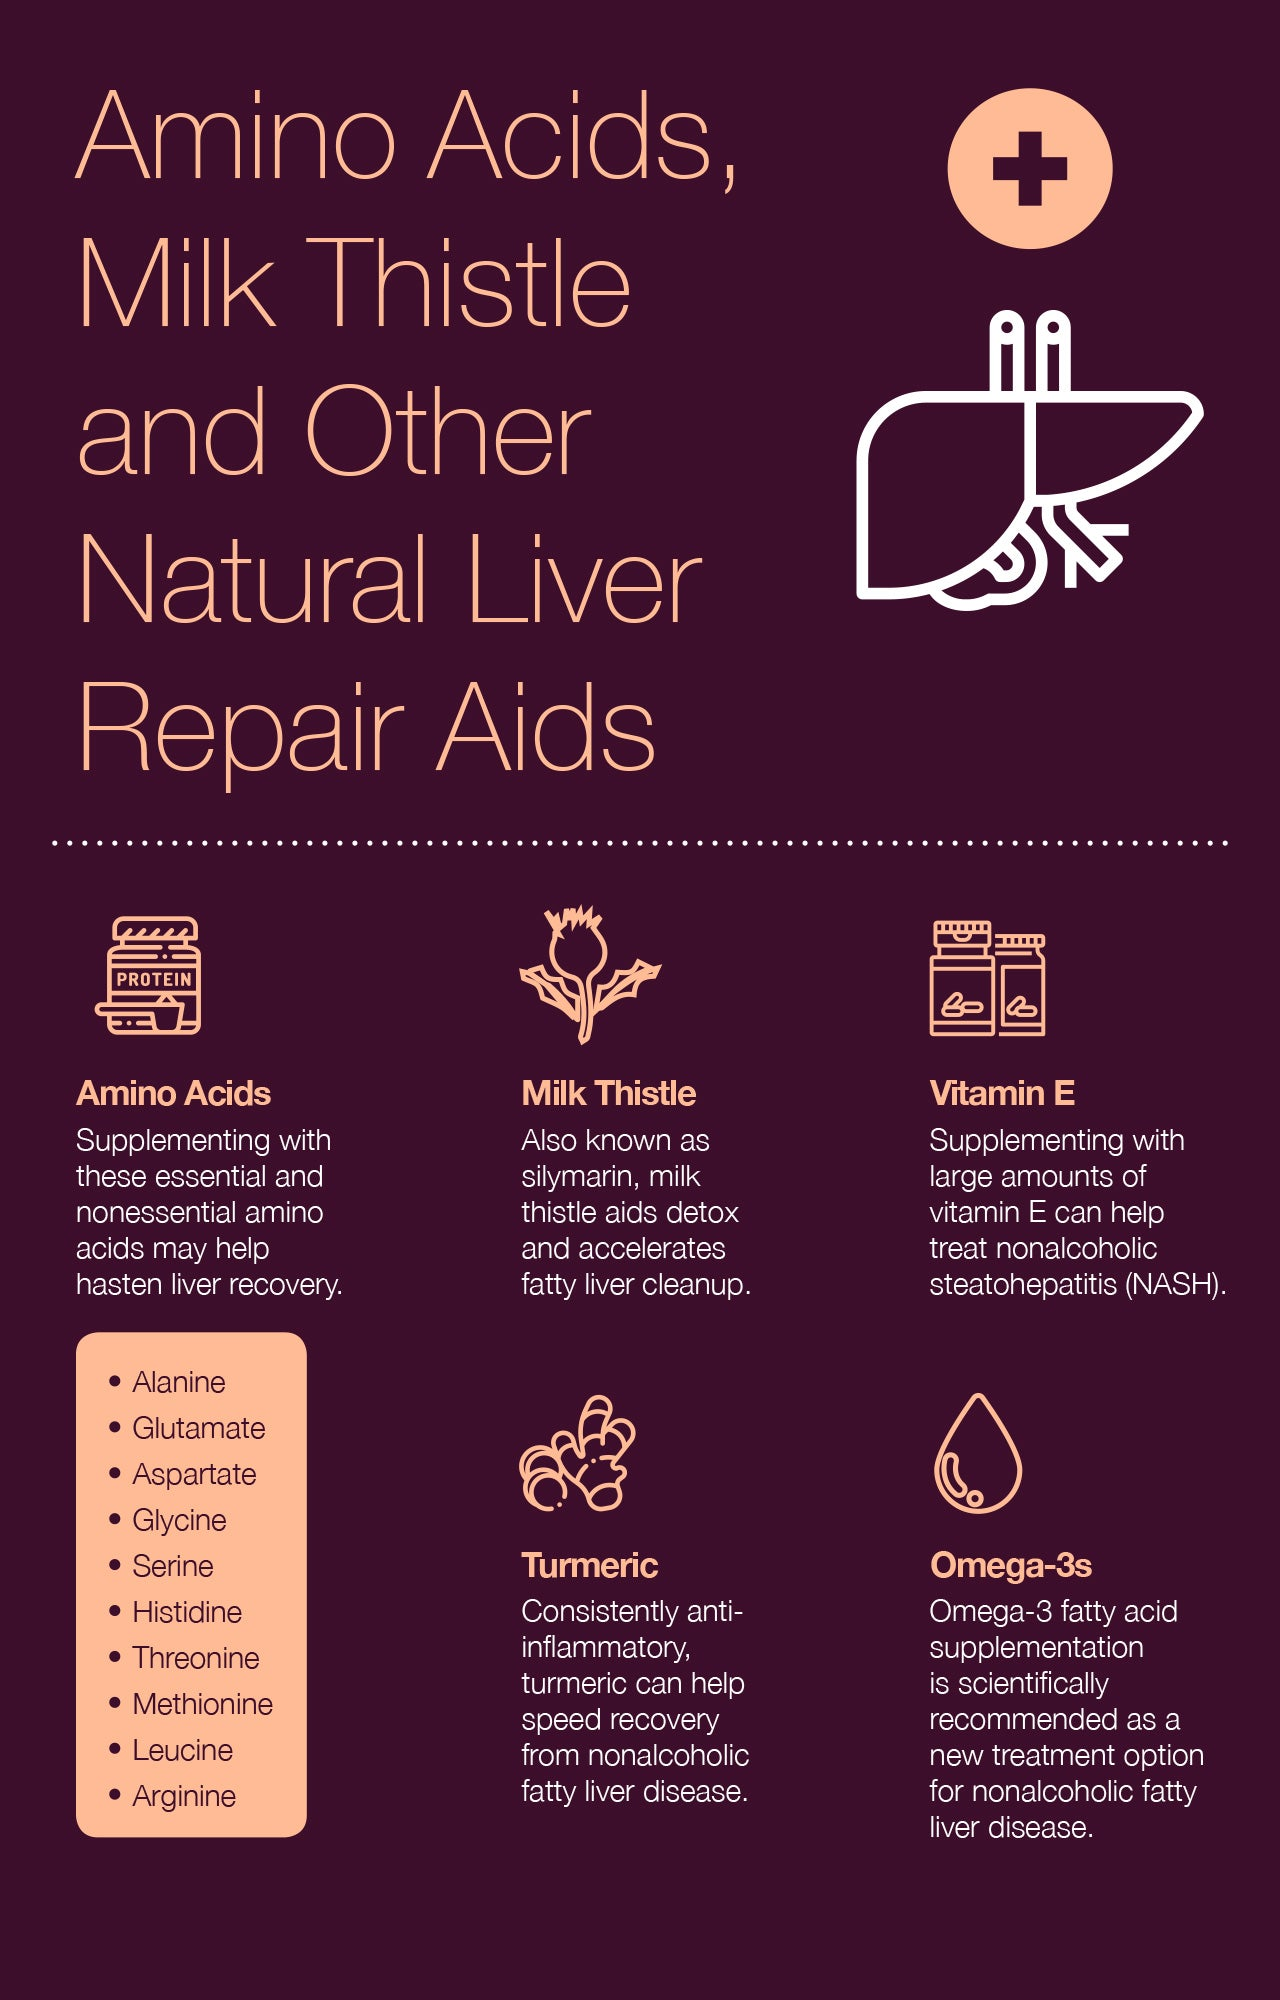 Amino Acids, Milk Thistle and Other Natural Liver Repair Aids